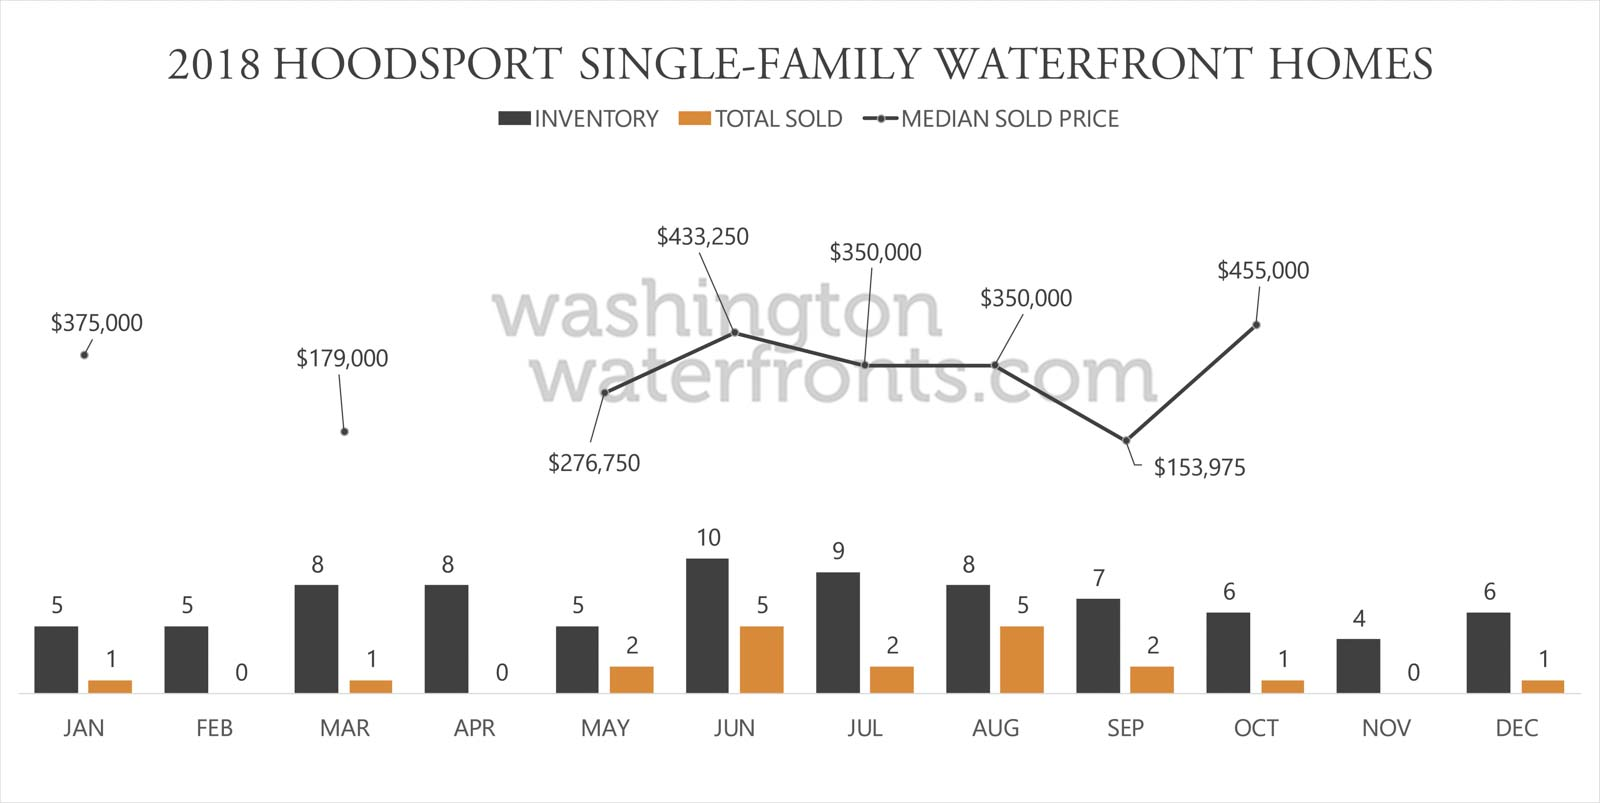 Hoodsport Waterfront Inventory